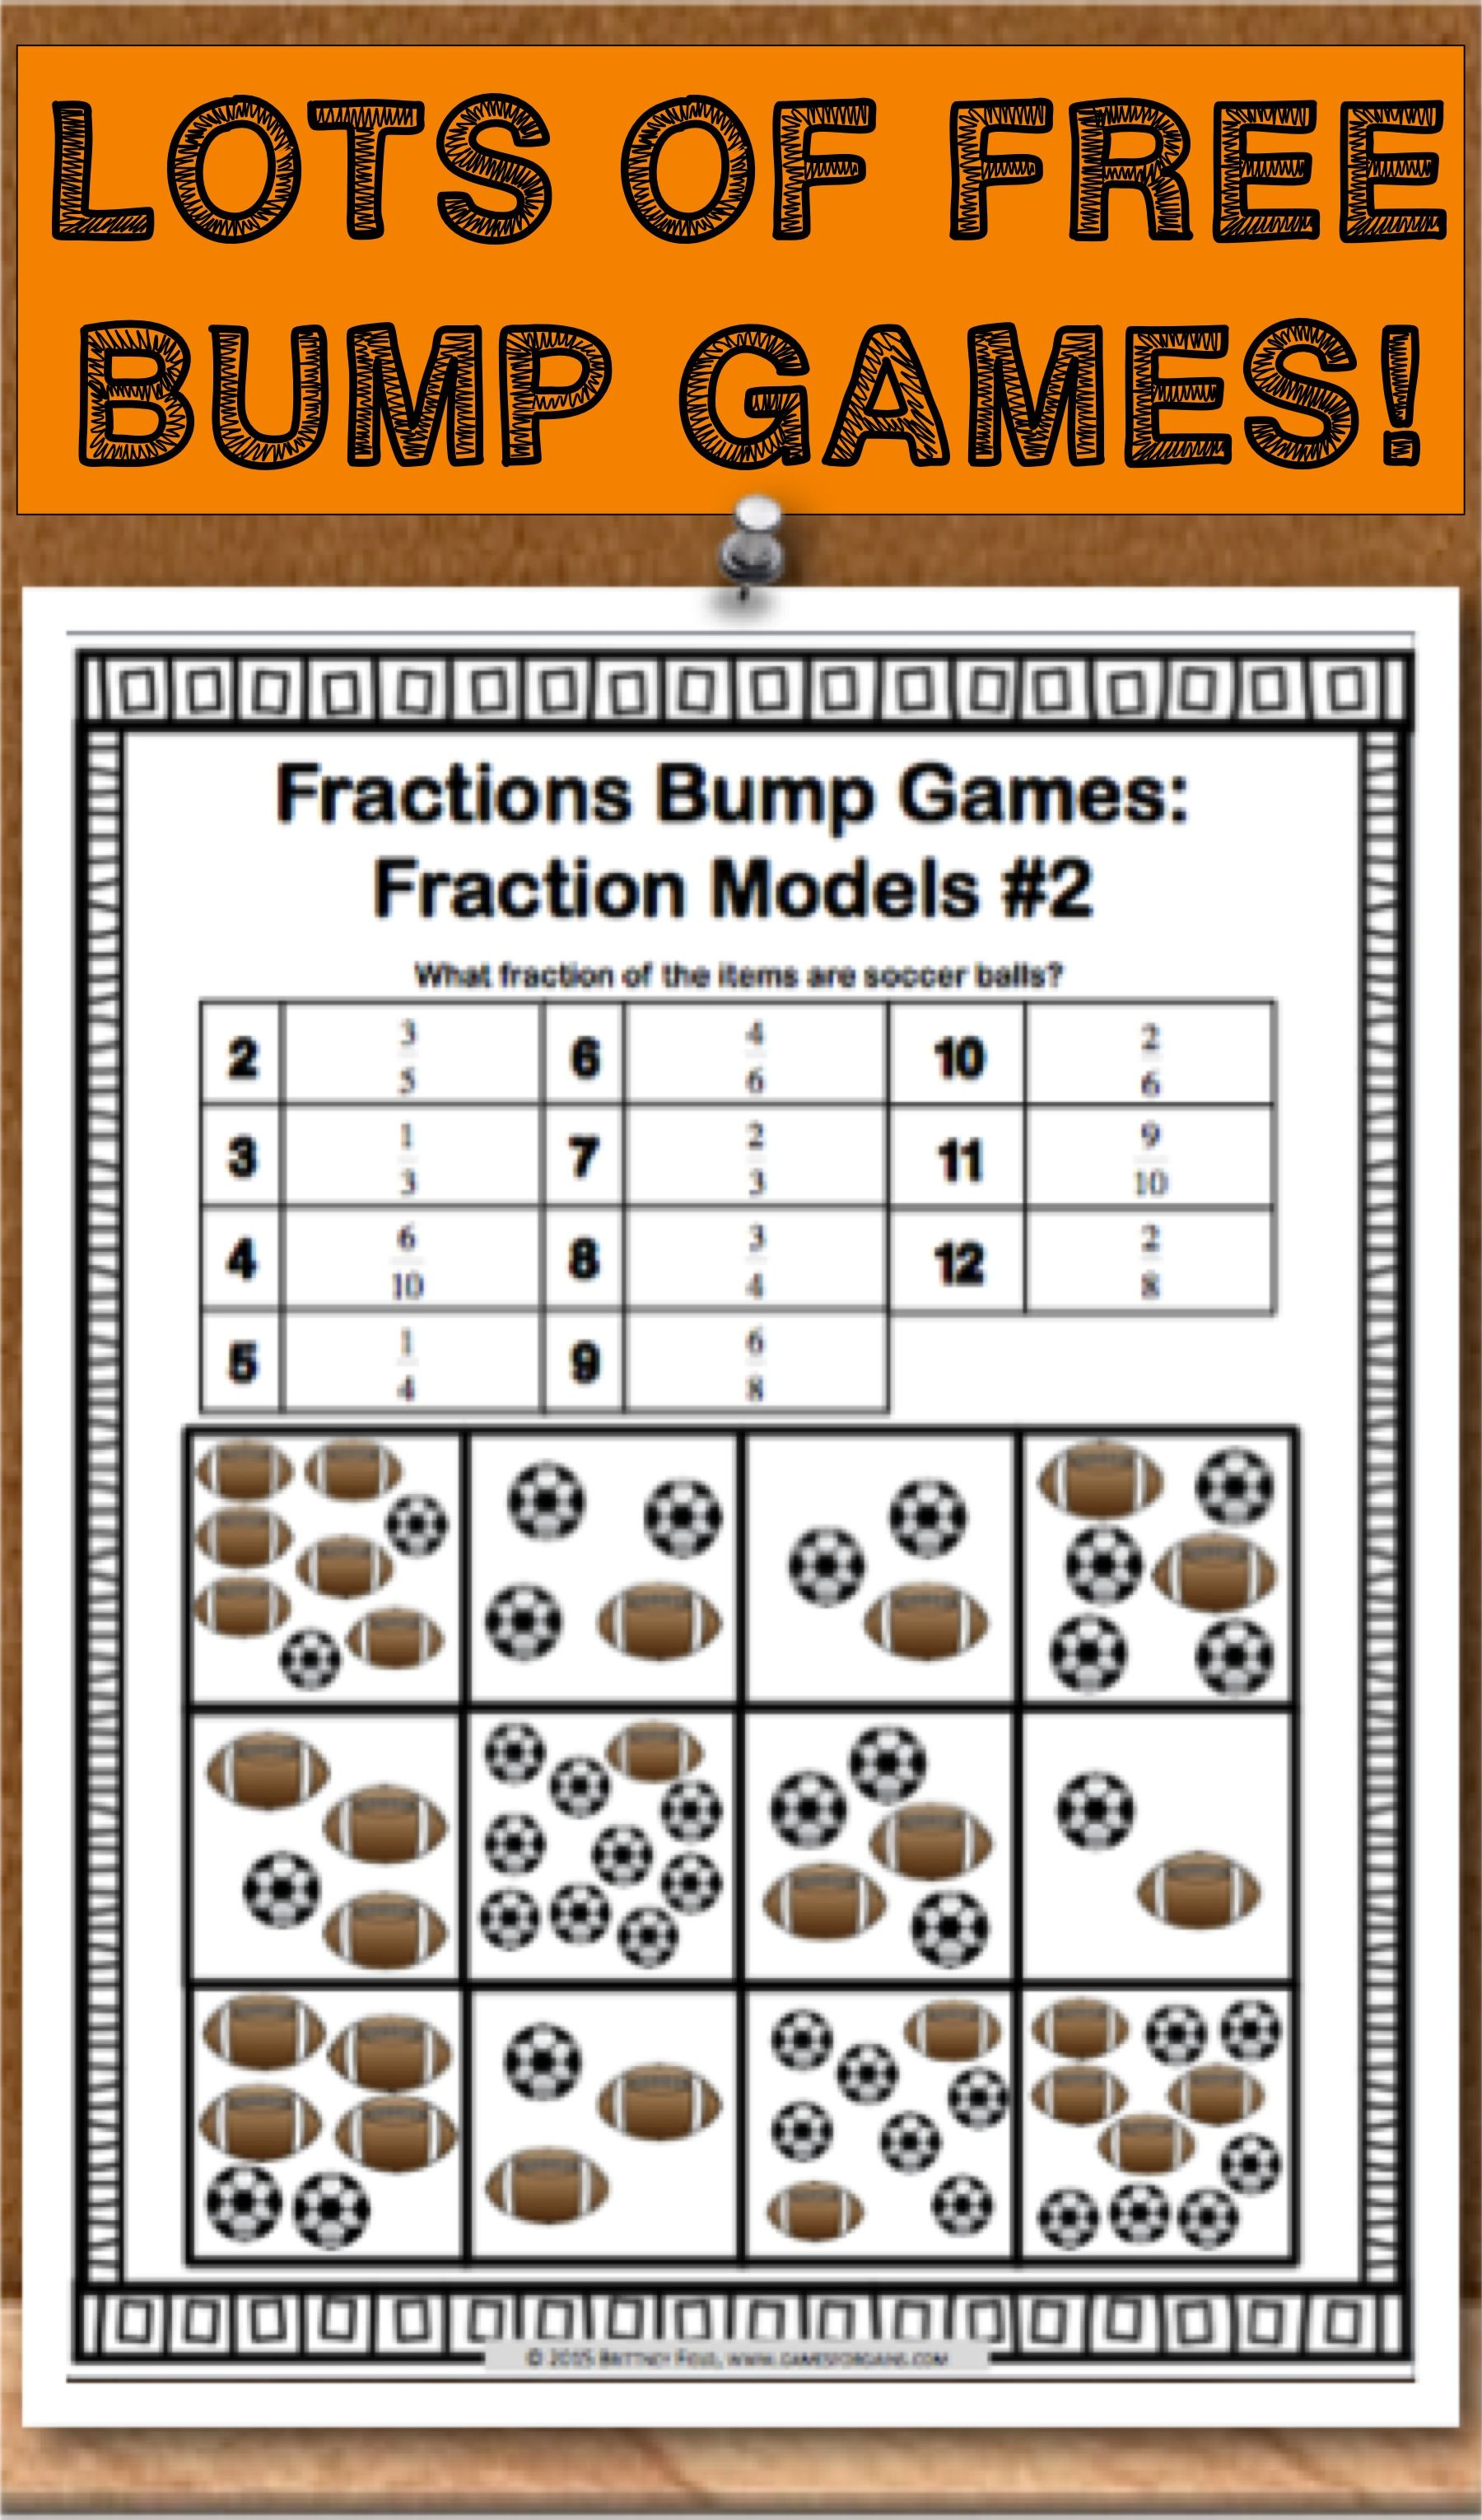 Get This And 11 Other Fraction Bumps Games As An Exclusive Freebie When You Subscribe To The